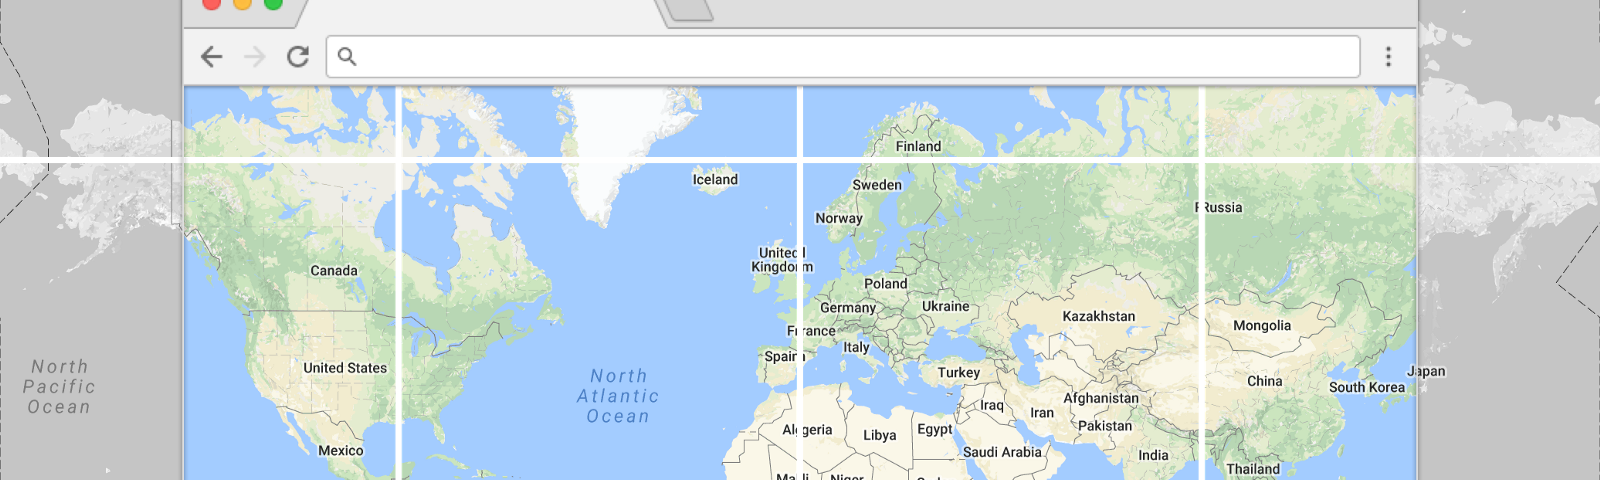 Prototyping a smoother map google design medium gumiabroncs Image collections